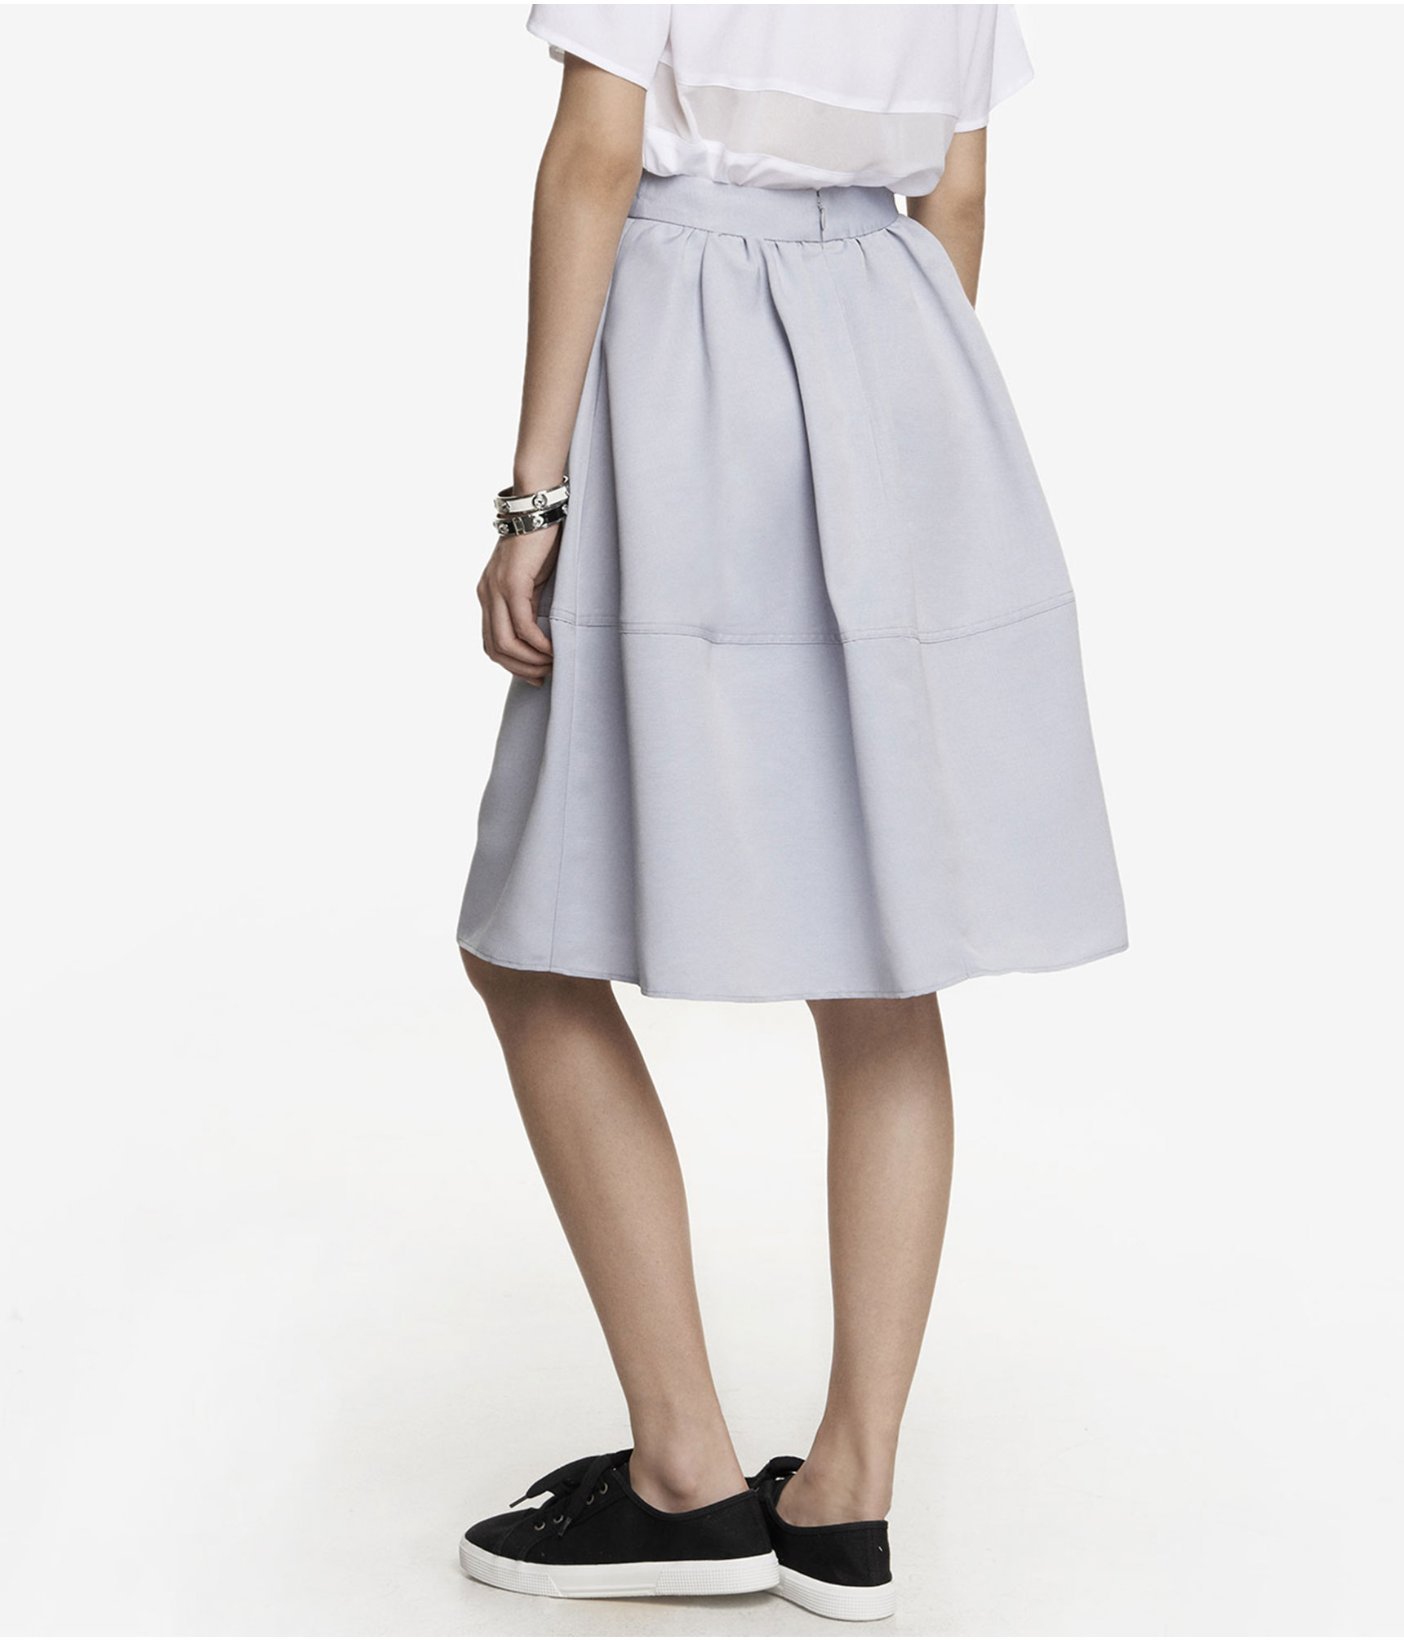 express high waist midi skirt in gray pale gray lyst